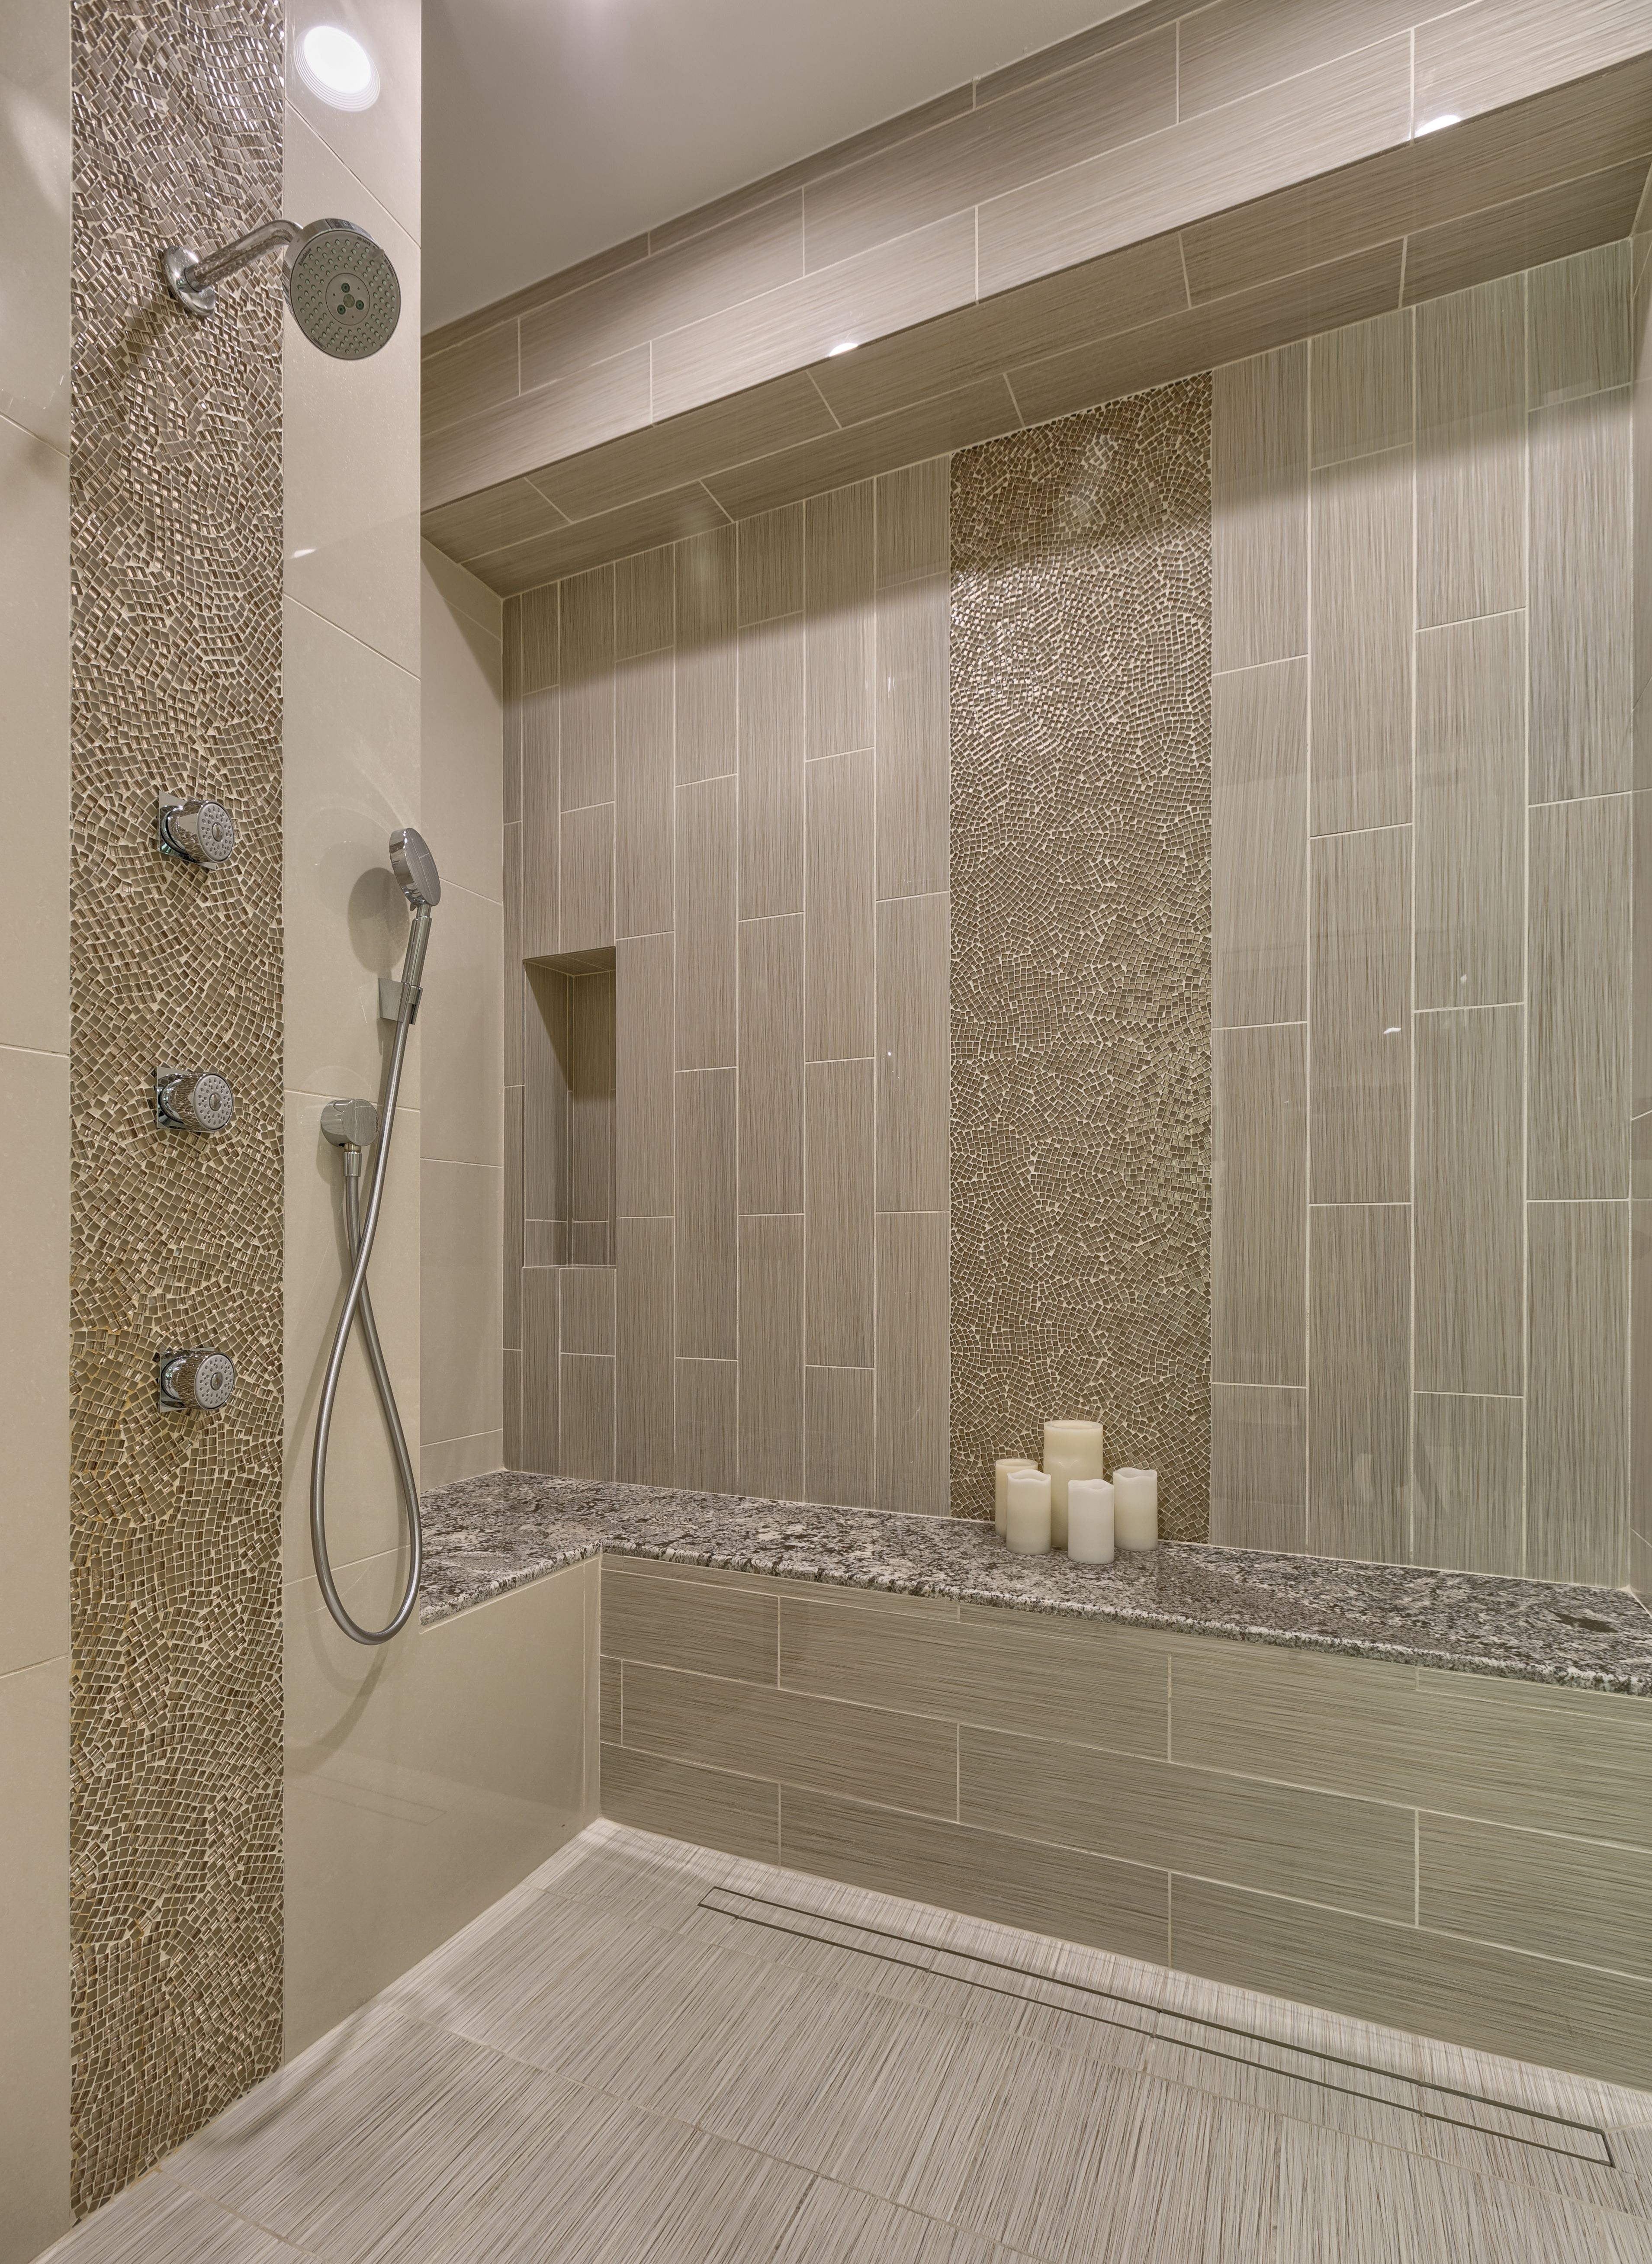 47 Stunning Showers That Will Wash Your Body And Soul Kitchen Bath Design Kitchen Bath Remodeling Bath Design